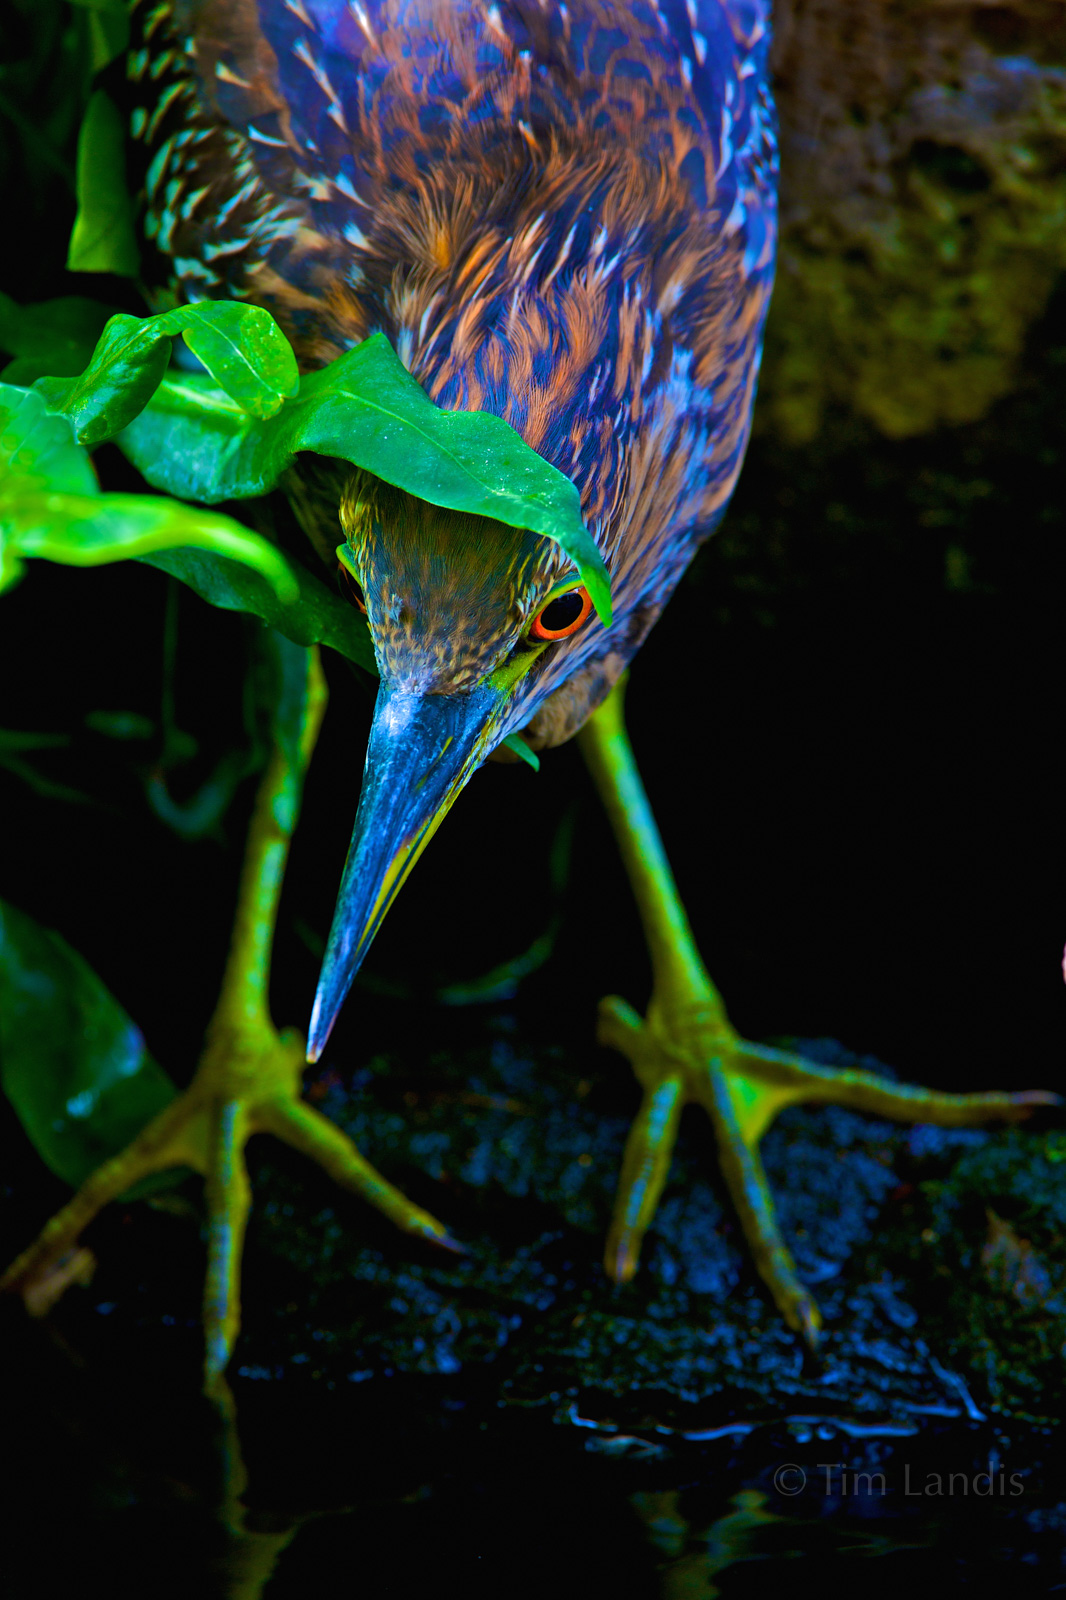 Green Heron, Hawaii, eyes, heron, heron fishing, night heron, yellow feet, photo